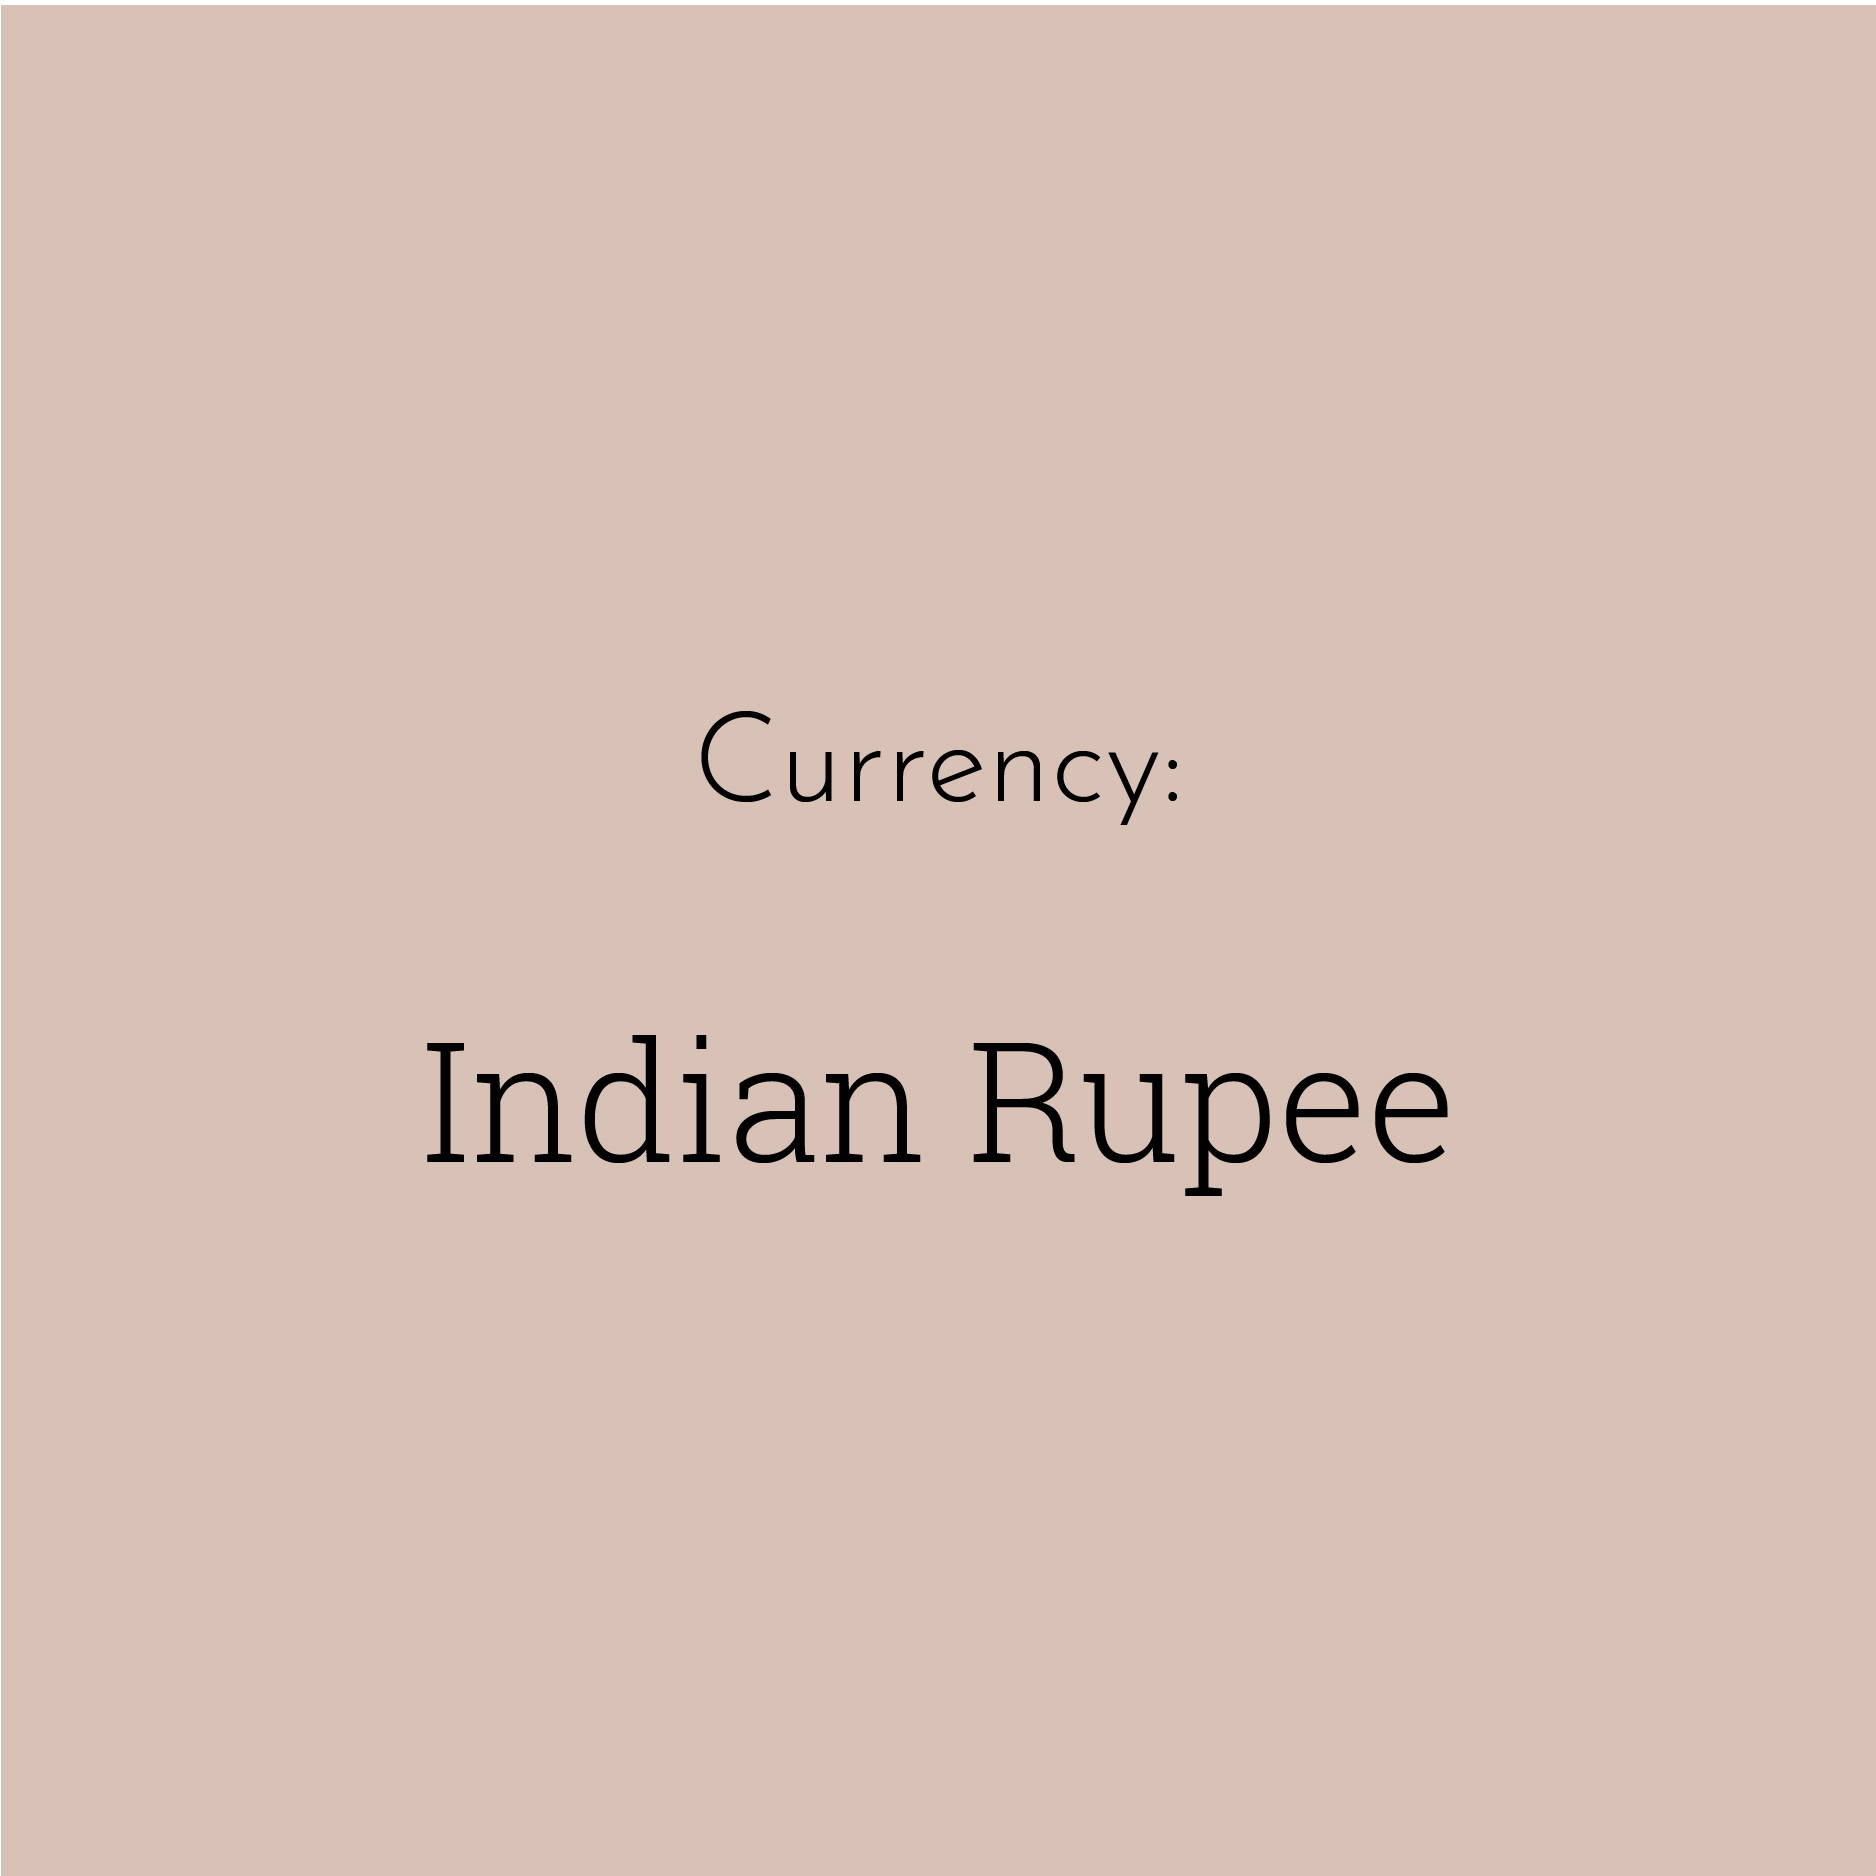 "A solid brown block contains the text ""Currency: Indian Rupee"""